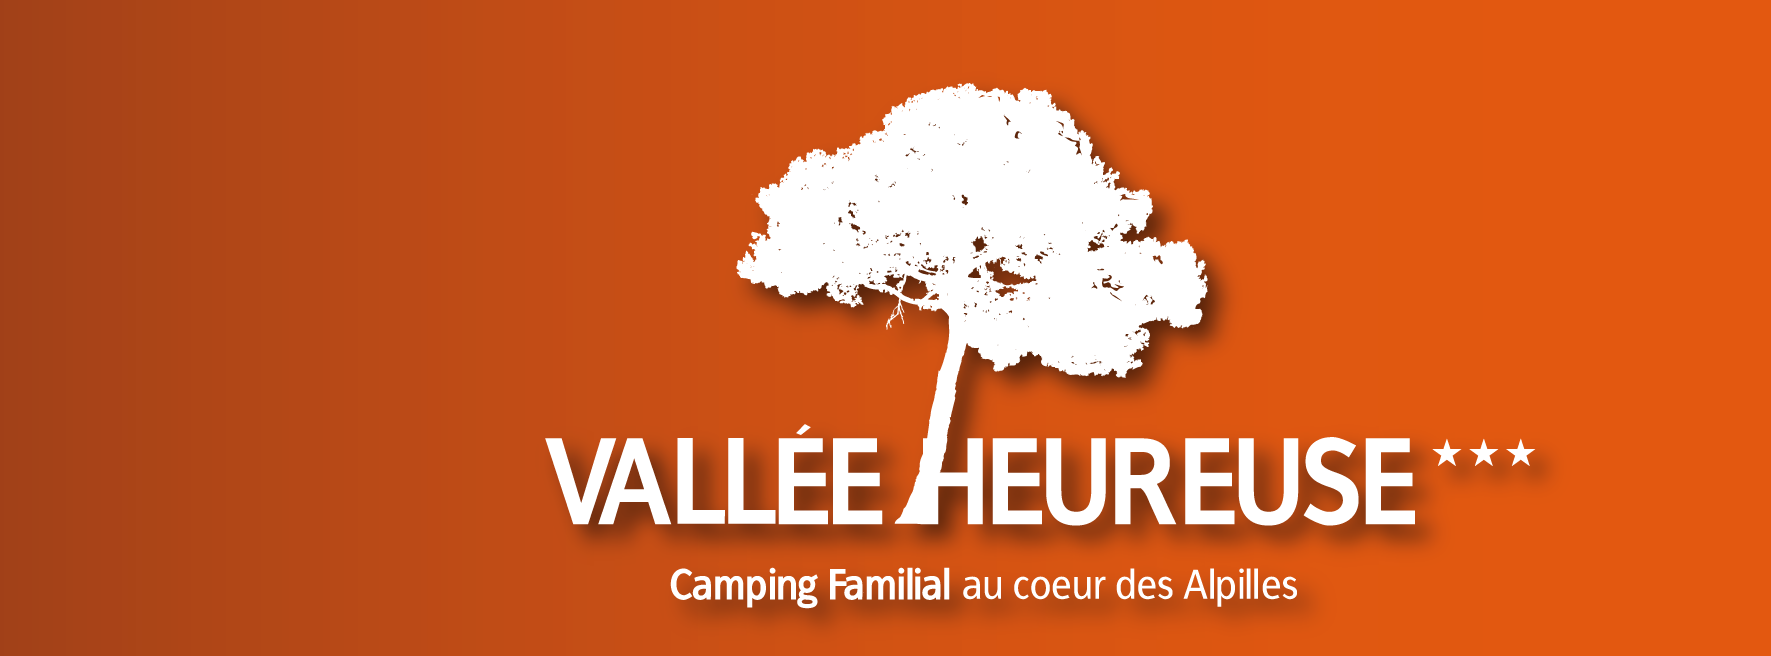 camping la valle heureuse camping la valle heureuse. Black Bedroom Furniture Sets. Home Design Ideas